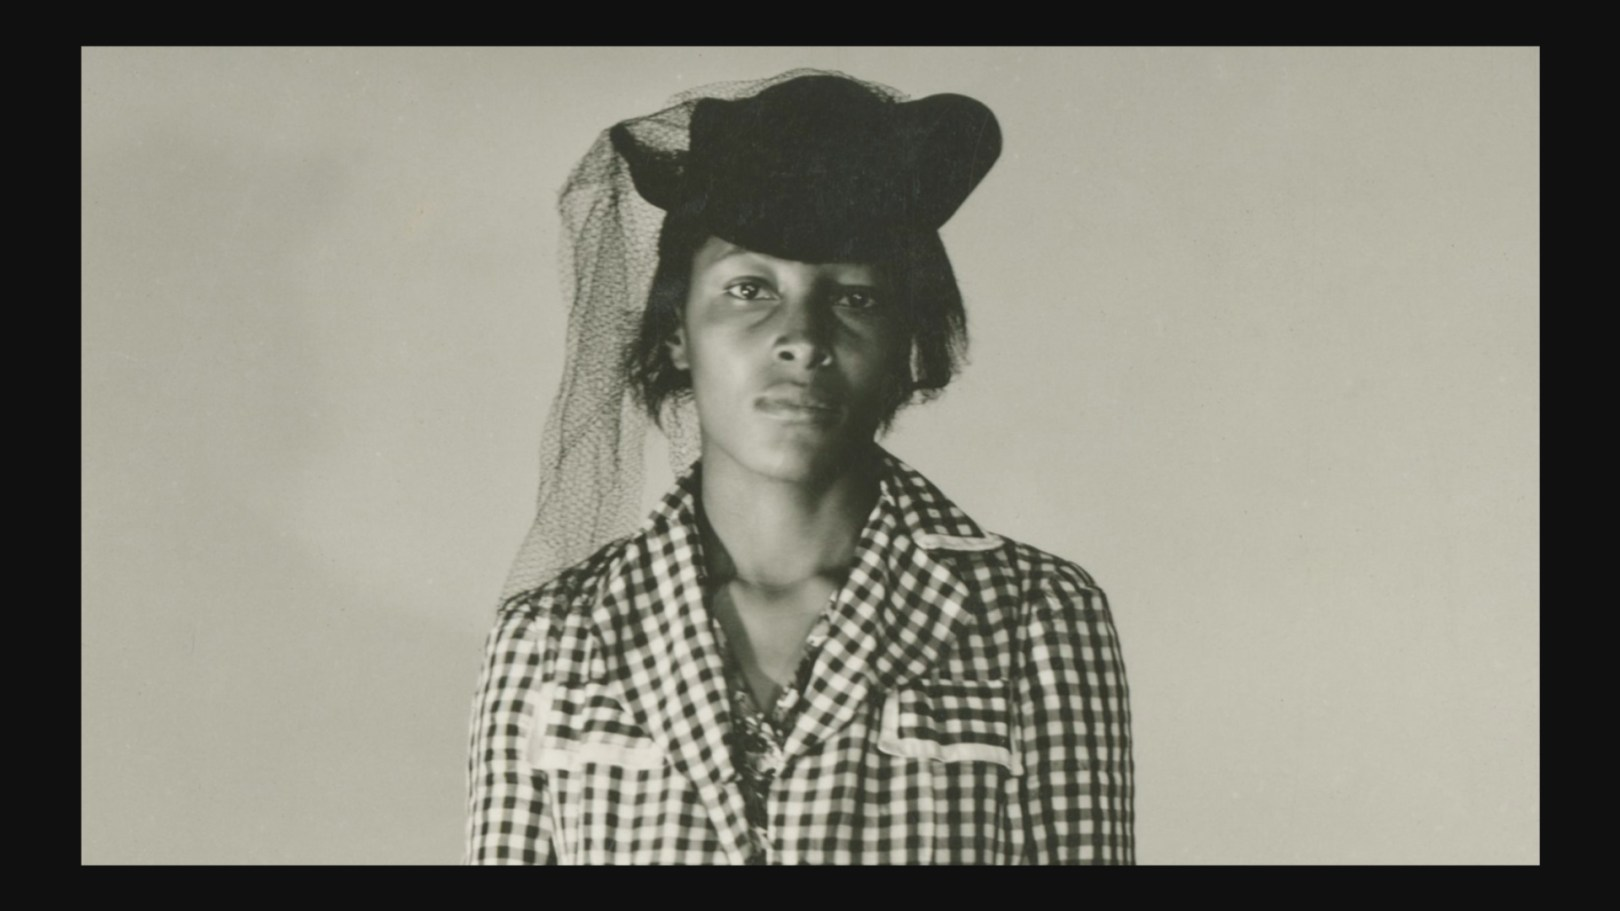 Films in London today: THE RAPE OF RECY TAYLOR at BFI & Deptford Cinema (02 OCT).